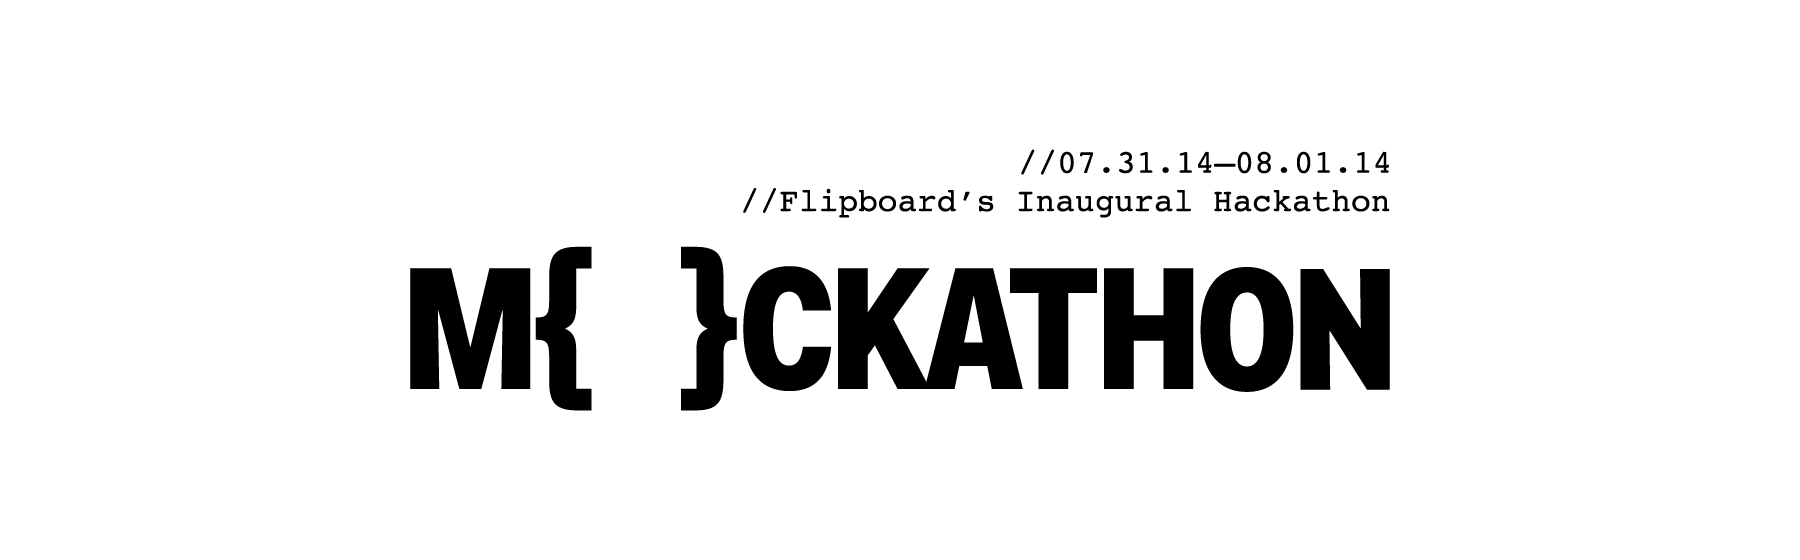 The logotype's brackets served as the main form of identification, paying homage to the code writing abilities of the participants, as well as Flipboard's square logo.